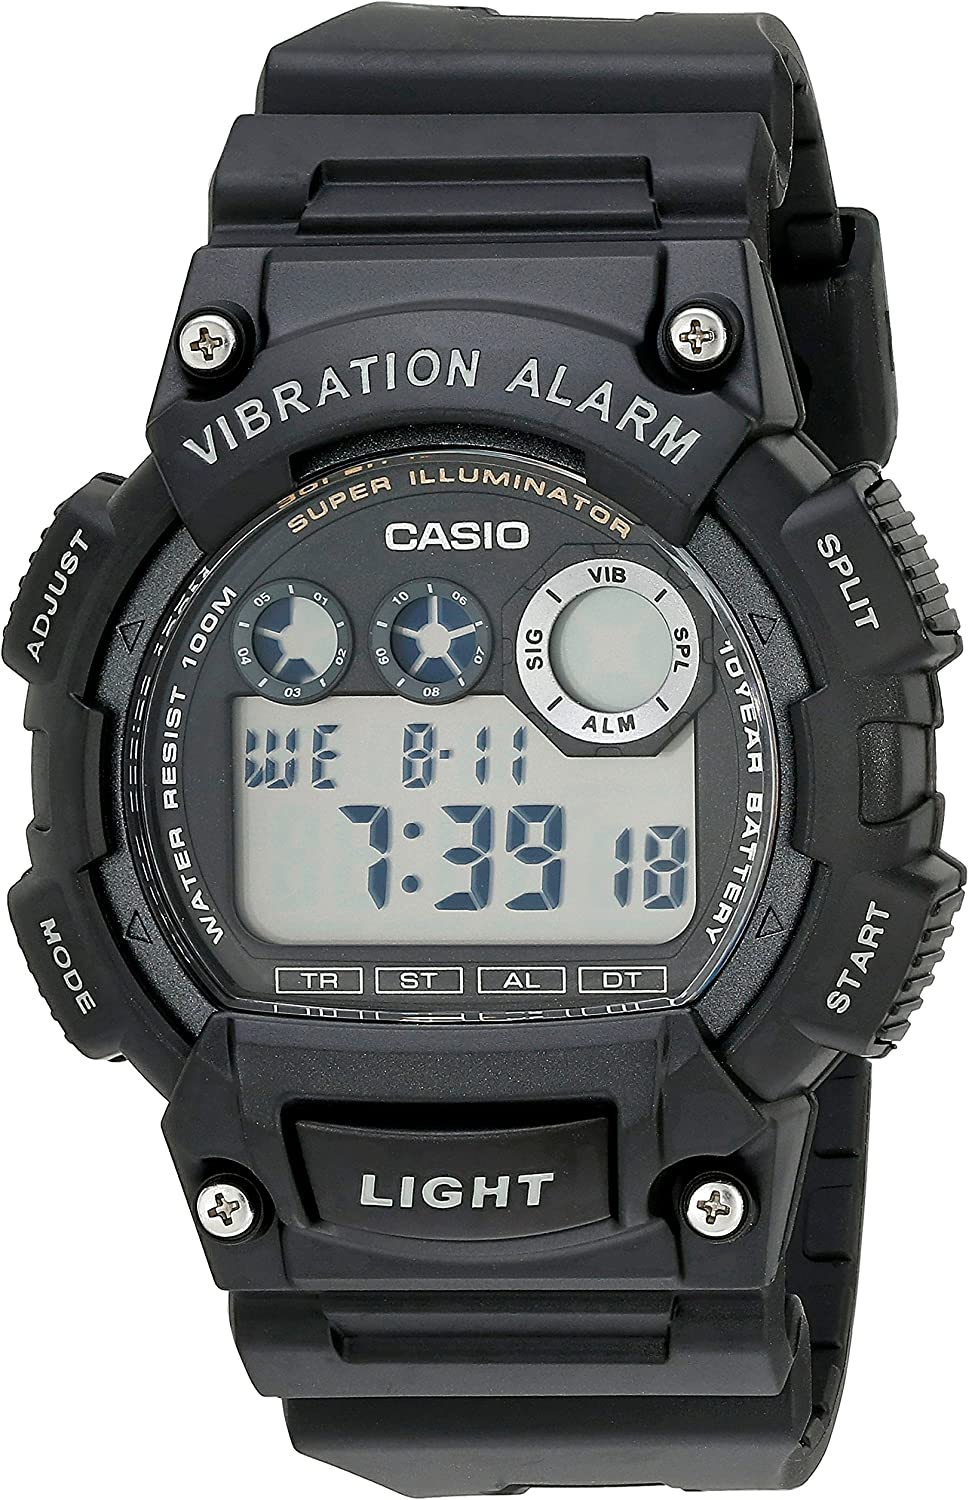 Casio Men s W735H-1AVCF Super Illuminator Watch With Black Resin Band